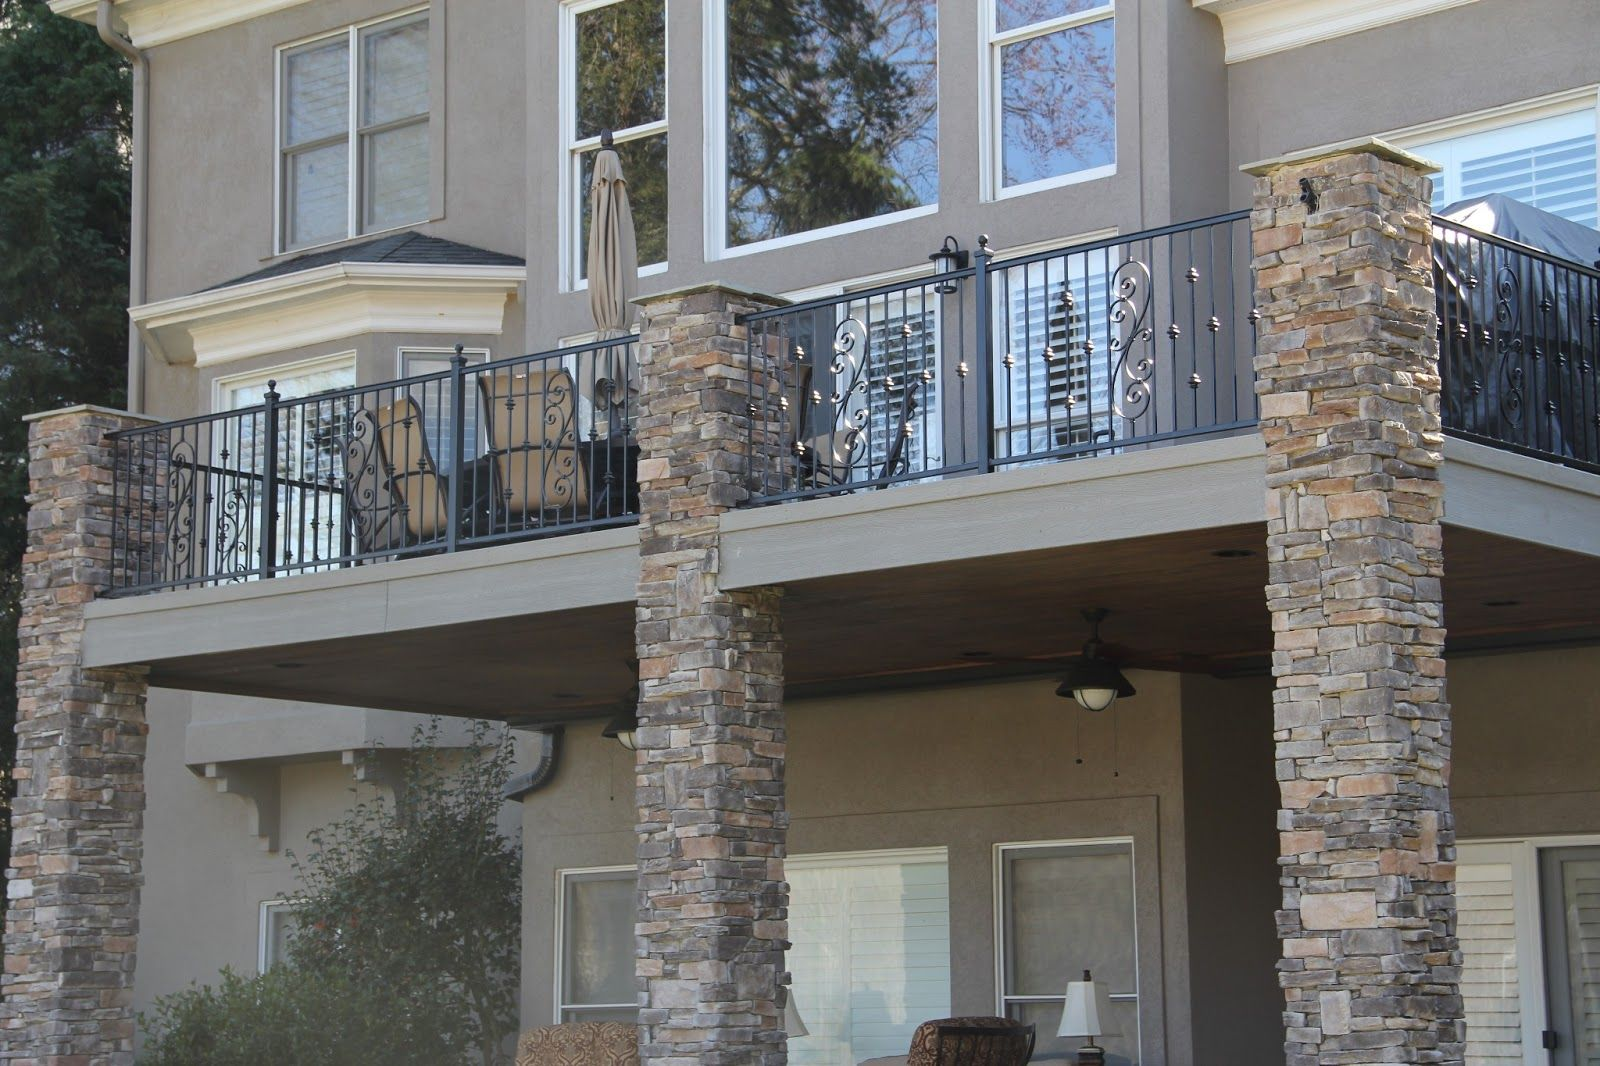 your home can look amazing when you add some wrought iron to it balcony railing designfence - Wall Railings Designs